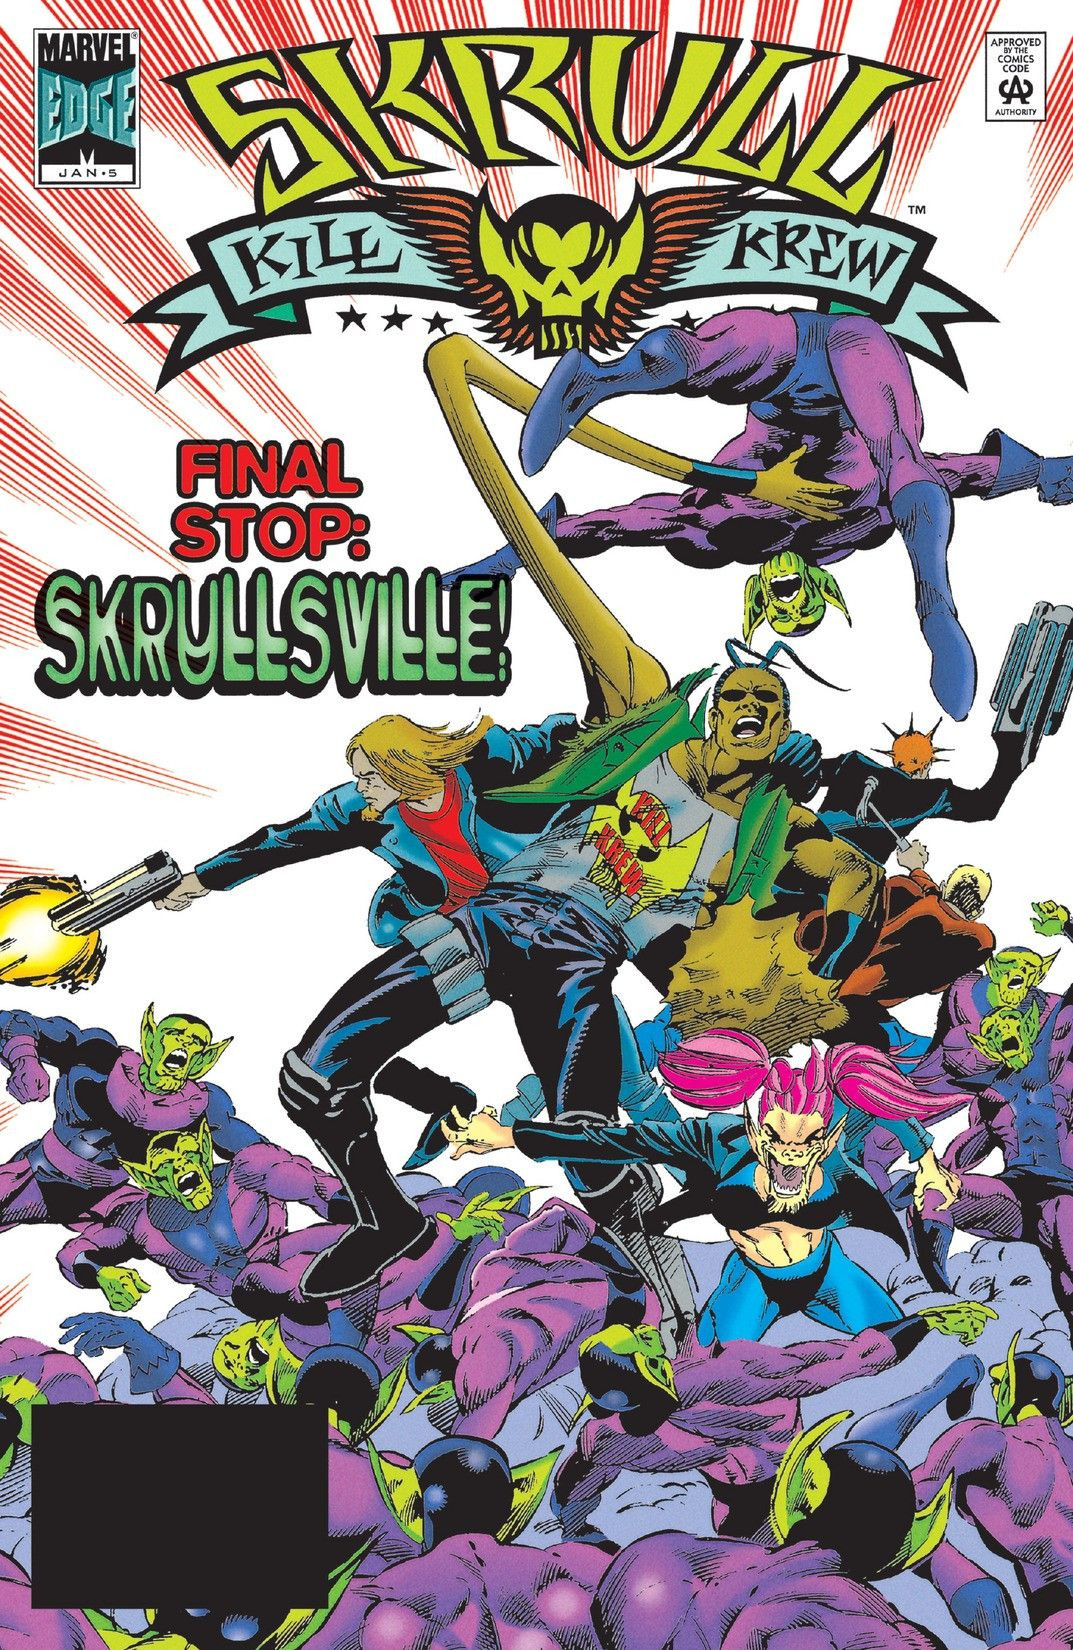 Skrull Kill Krew Vol 1 5